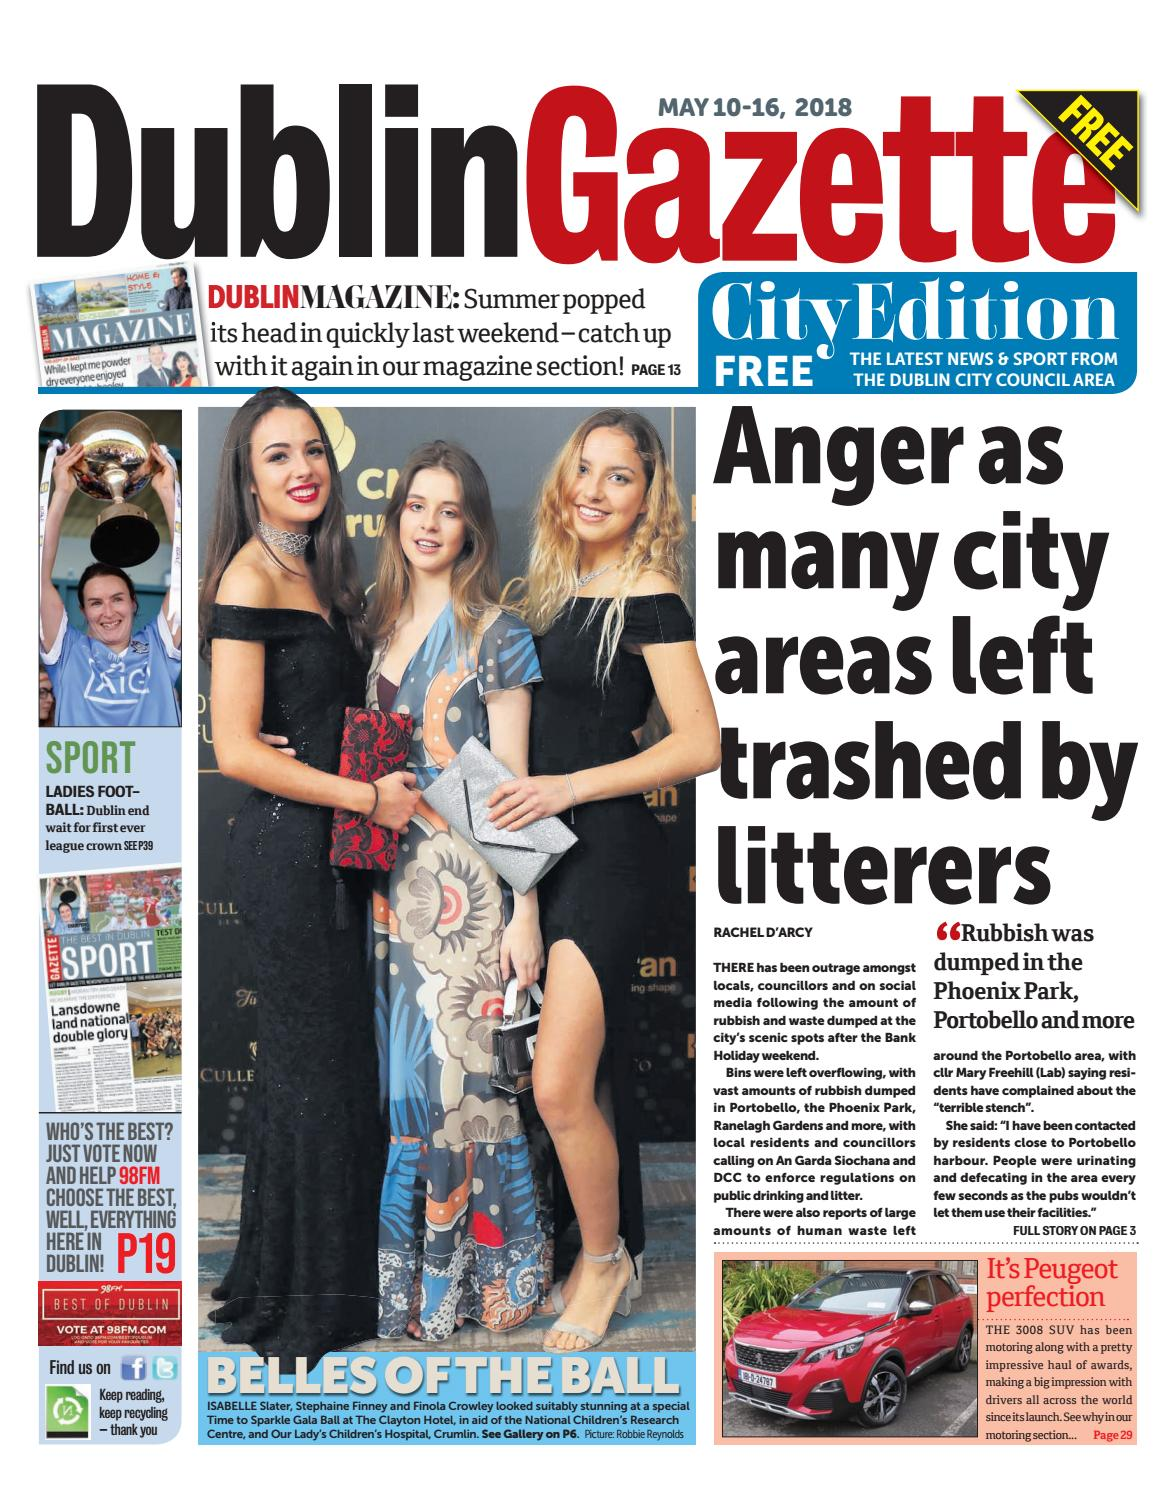 Dublin Gazette City Edition By Issuu Catriona Keily Top Handle Bag Brown